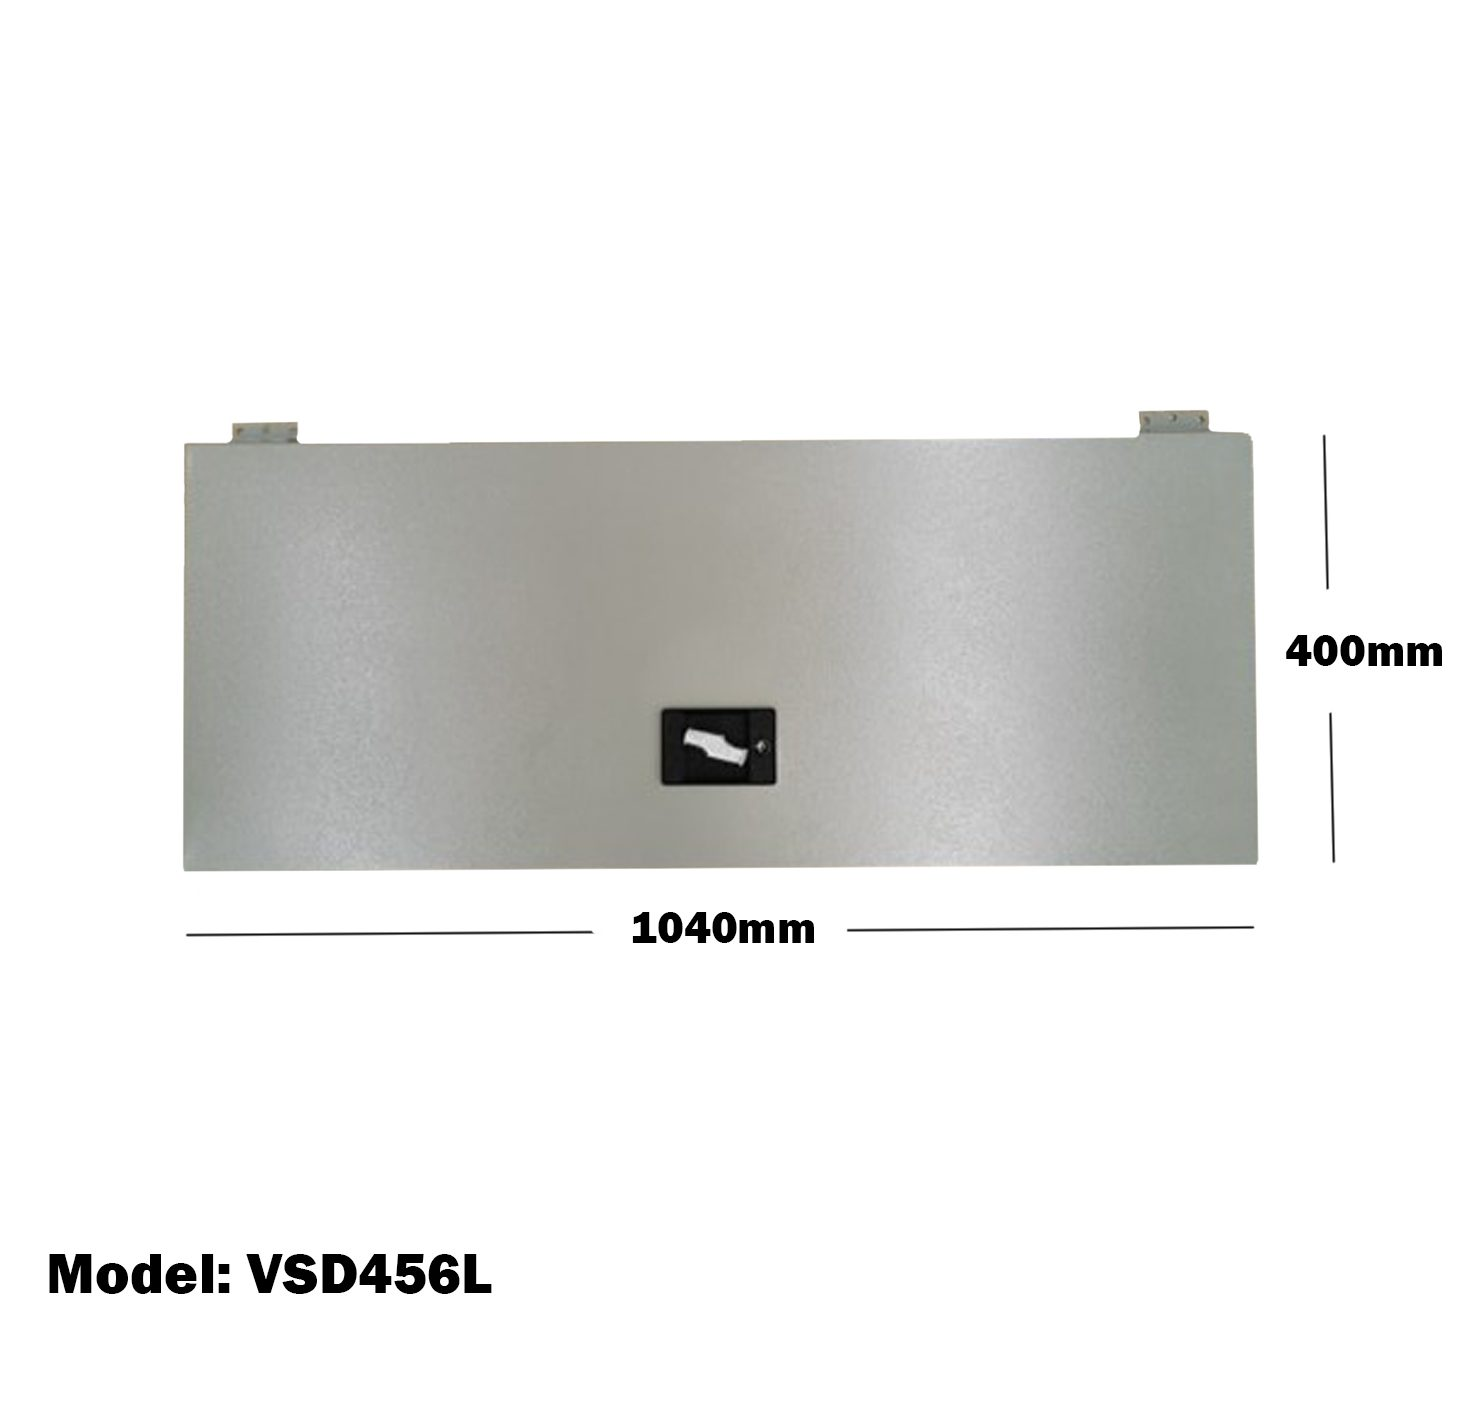 Van Shelving 1040mm(L) x 400mm(H) Lockable Door Double Tier For Van Shelving System VSD456L